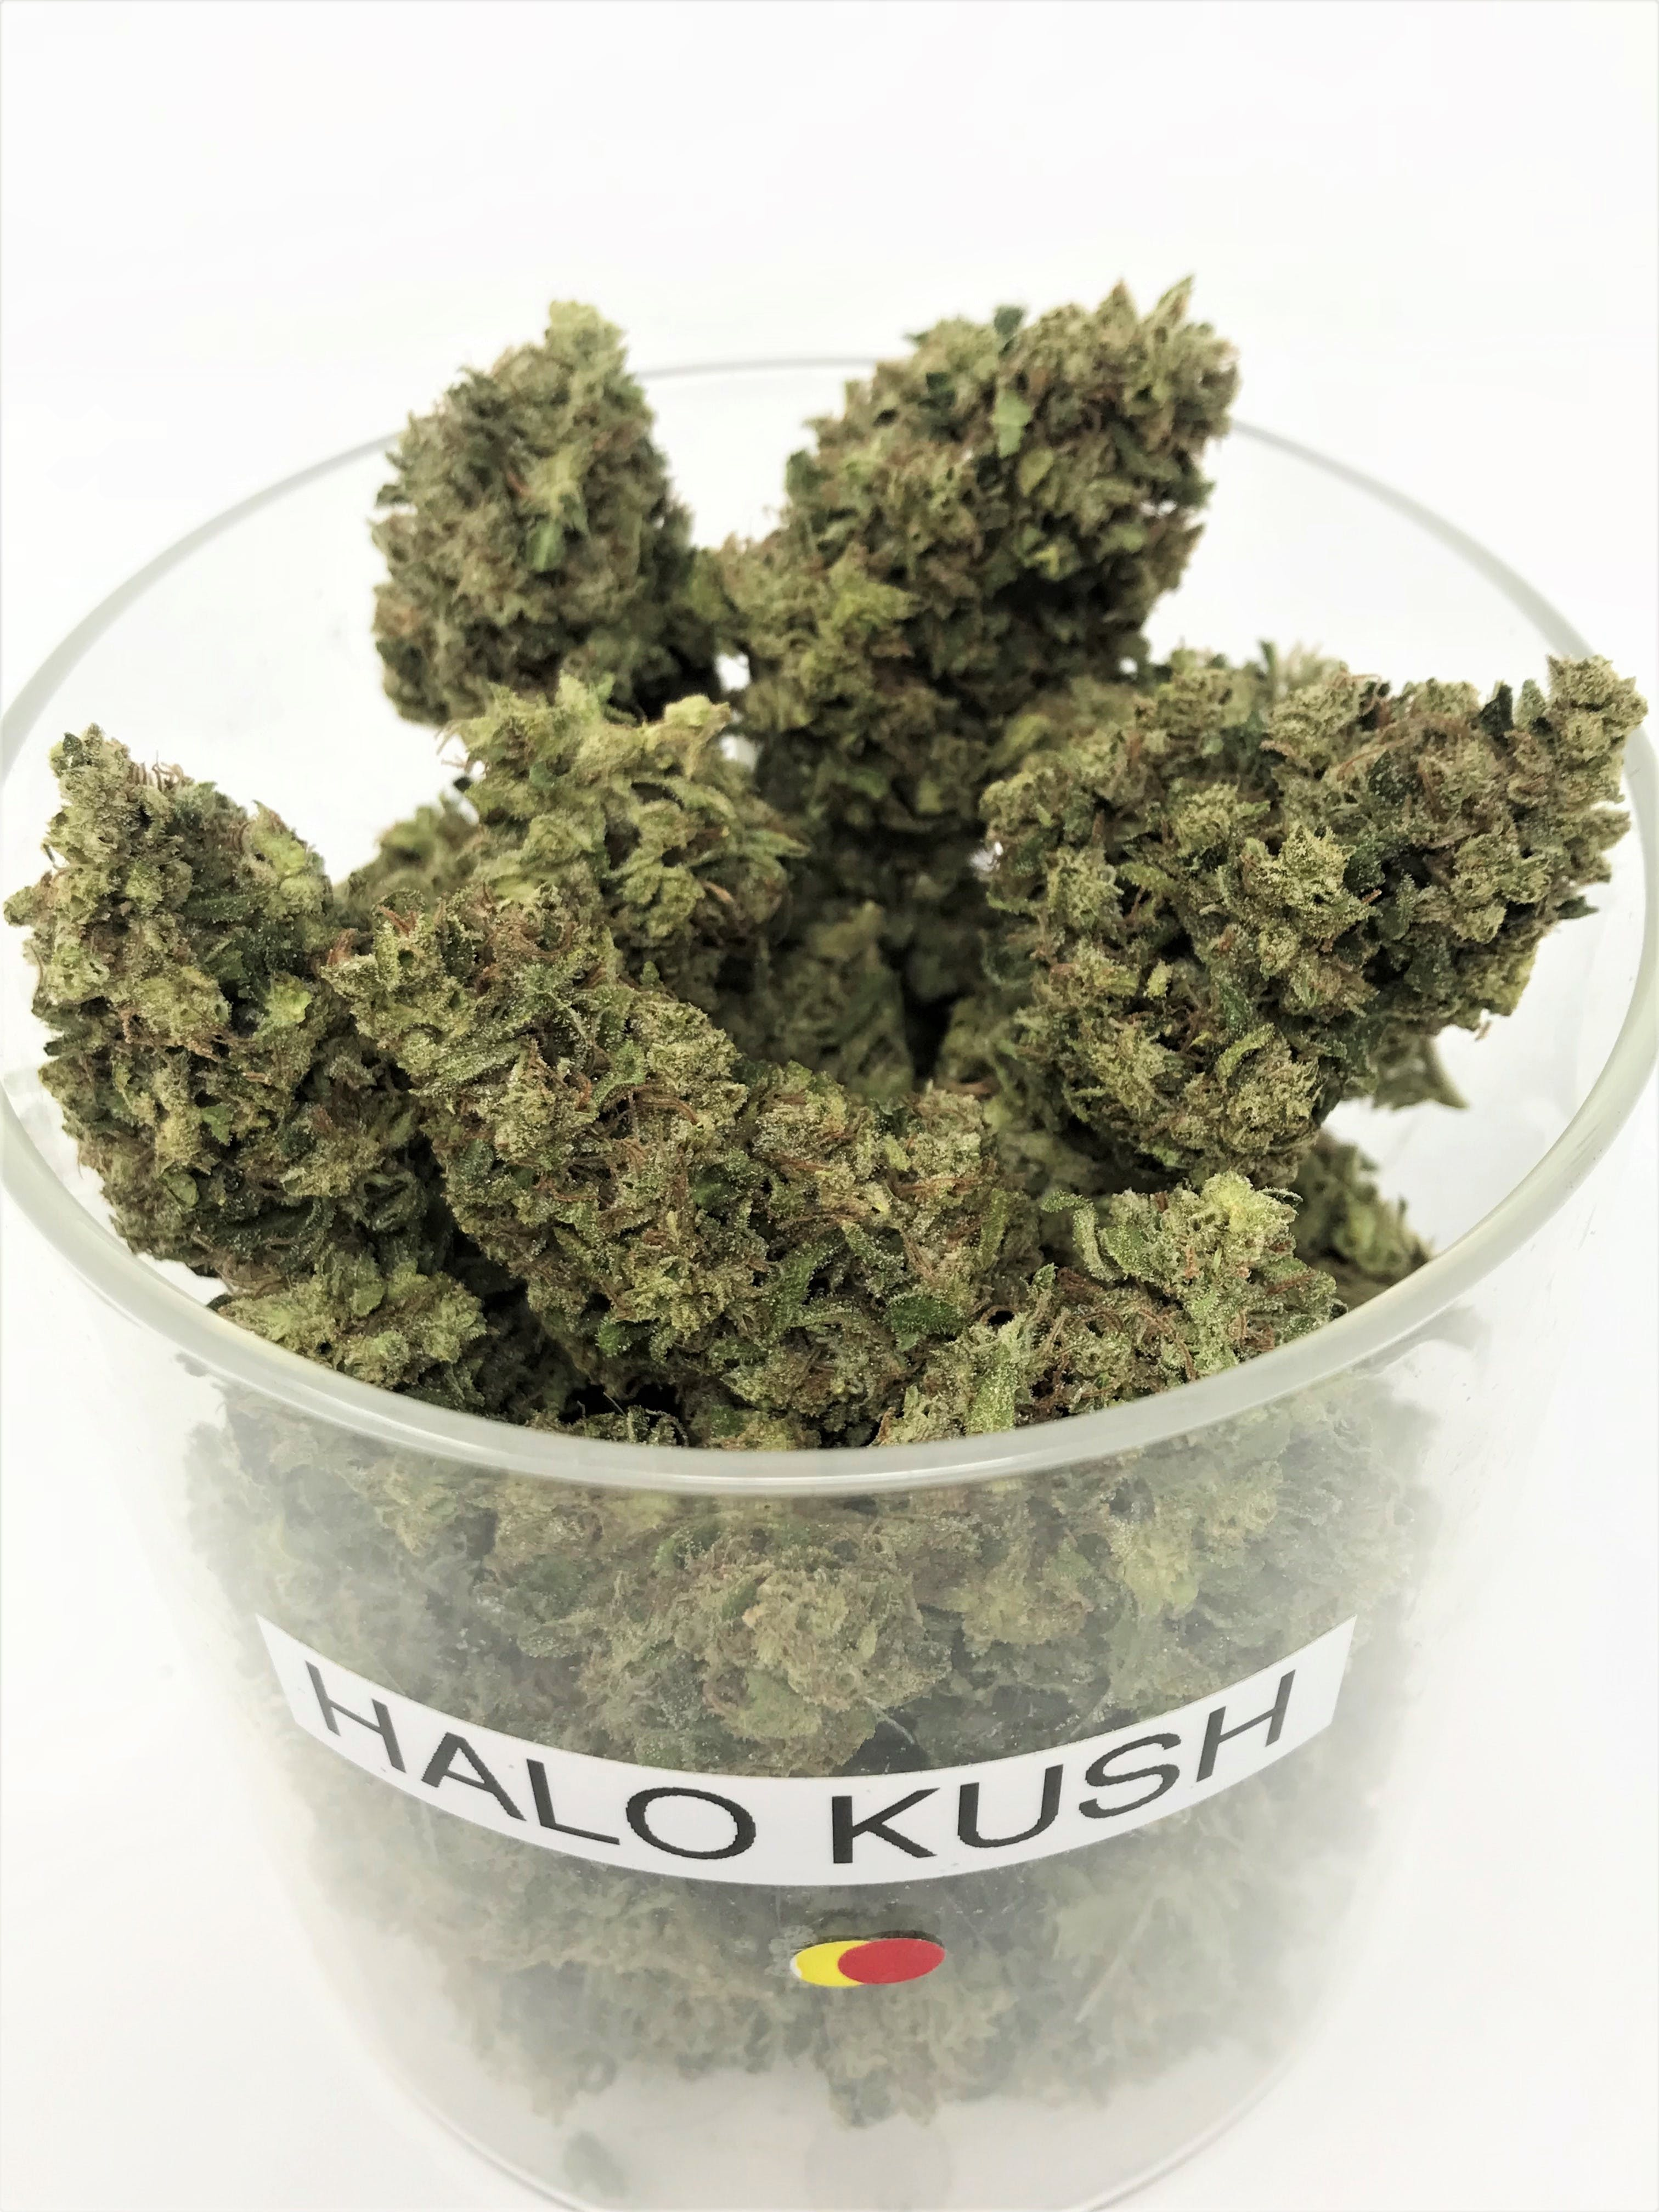 marijuana-dispensaries-call-for-address-murrieta-28-grams-of-halo-kush-24100-special-21-21